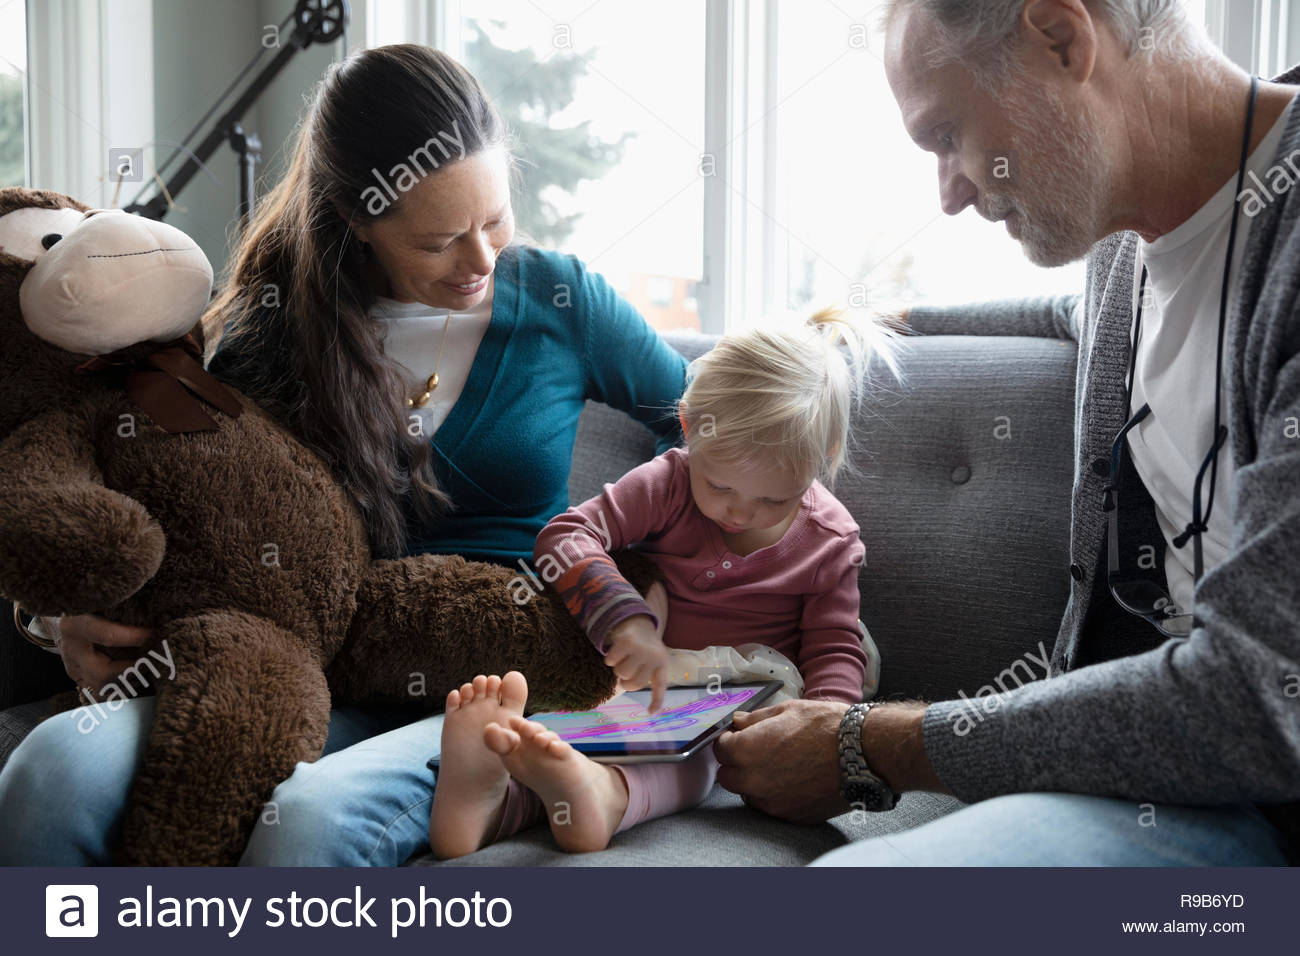 Grandparents watching granddaughter drawing on digital tablet Stock Photo